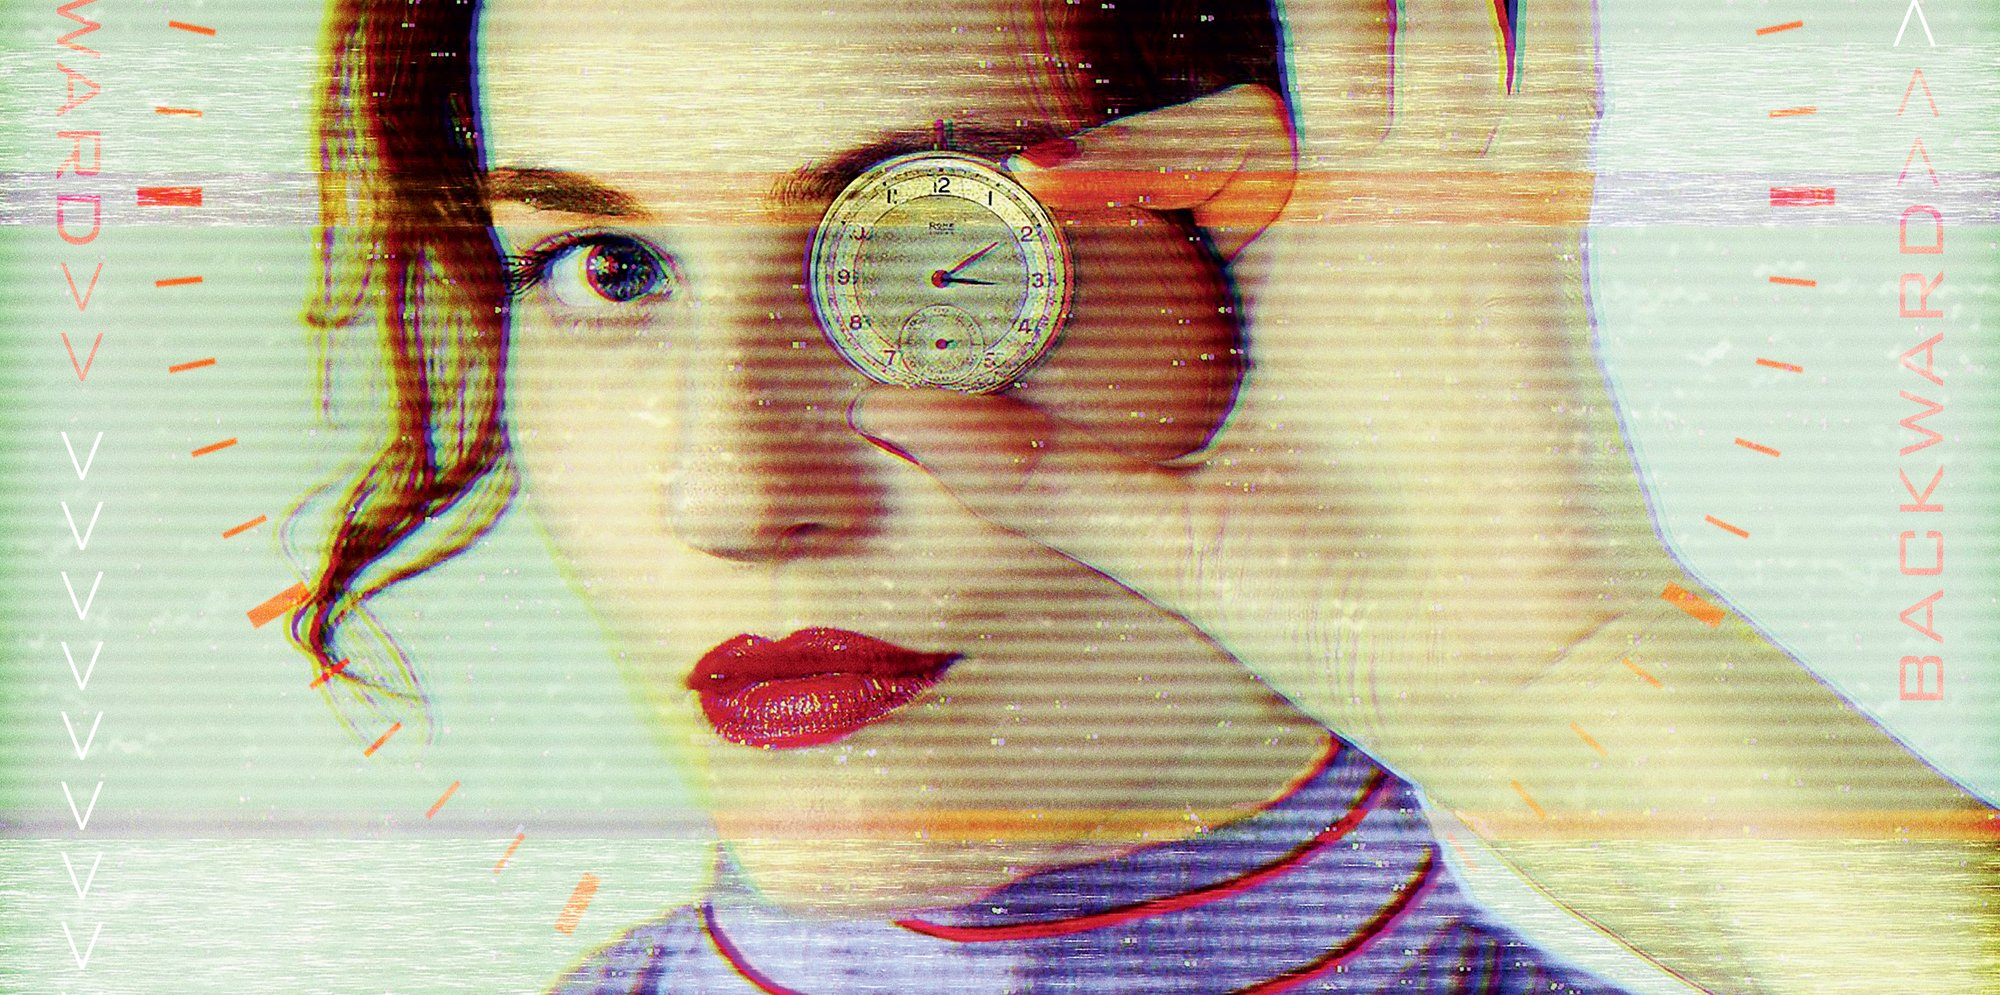 Passionate Machine: Rosy Carrick, in an old-fashioned purple dress, holds a clock face to her eye, looking into the camera with the other eye. A red digital clockface frames her face. A computer glitch distorts the image.